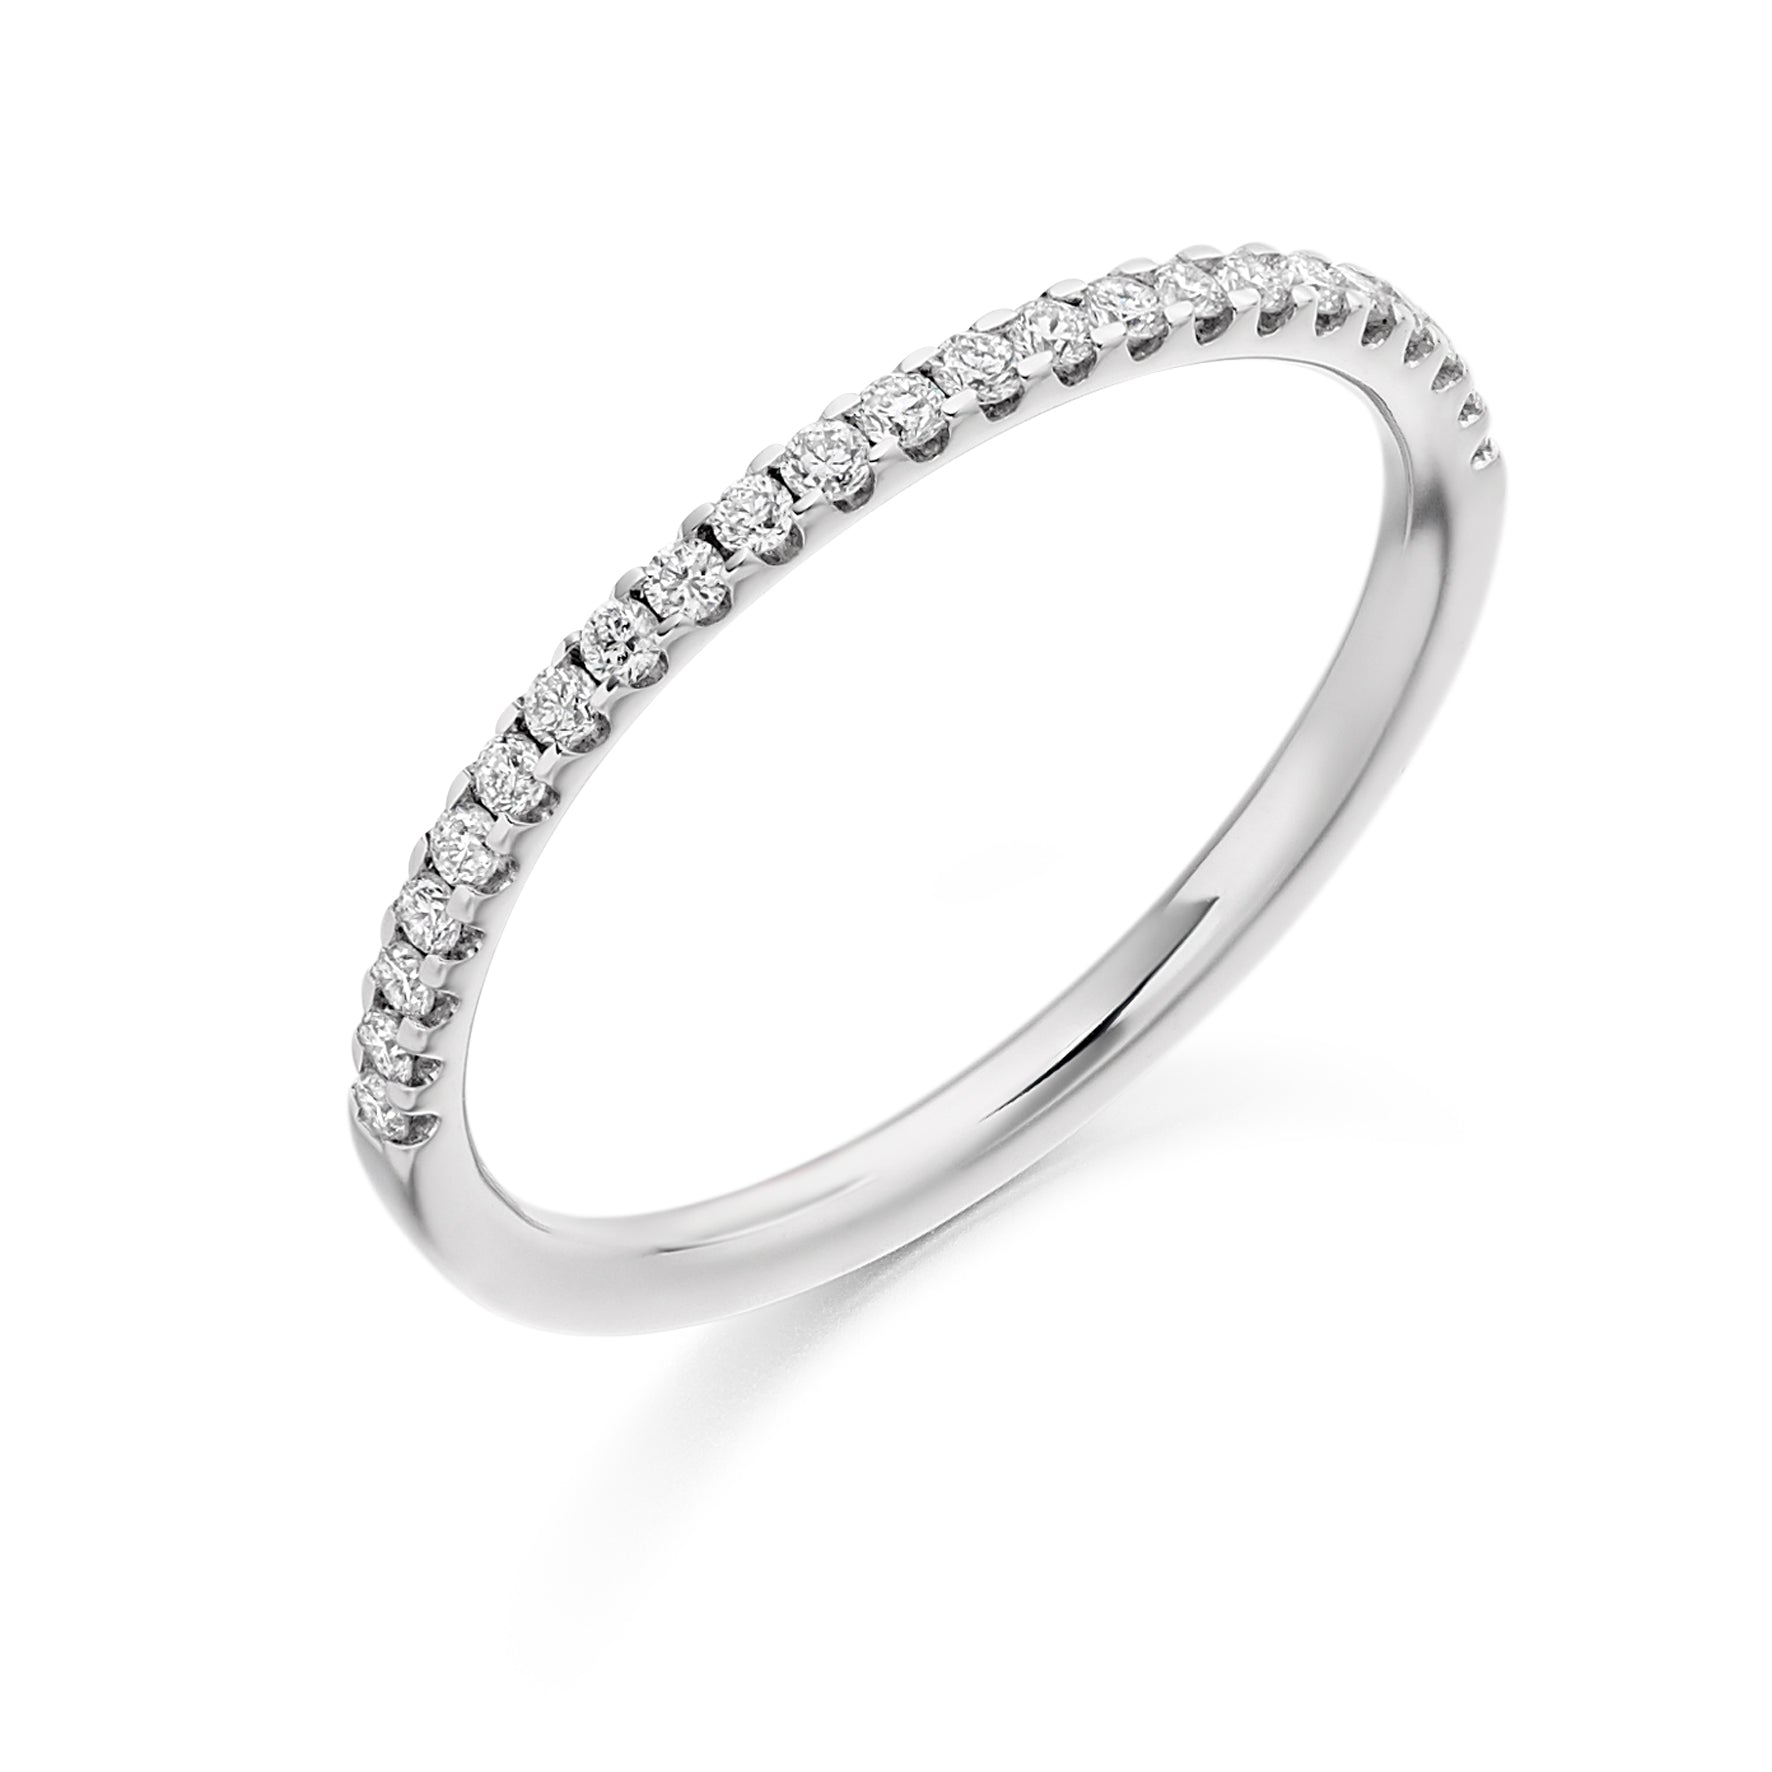 18ct White Gold 0.25 Carat Round Brilliant Cut Diamonds Vintage Wedding Ring